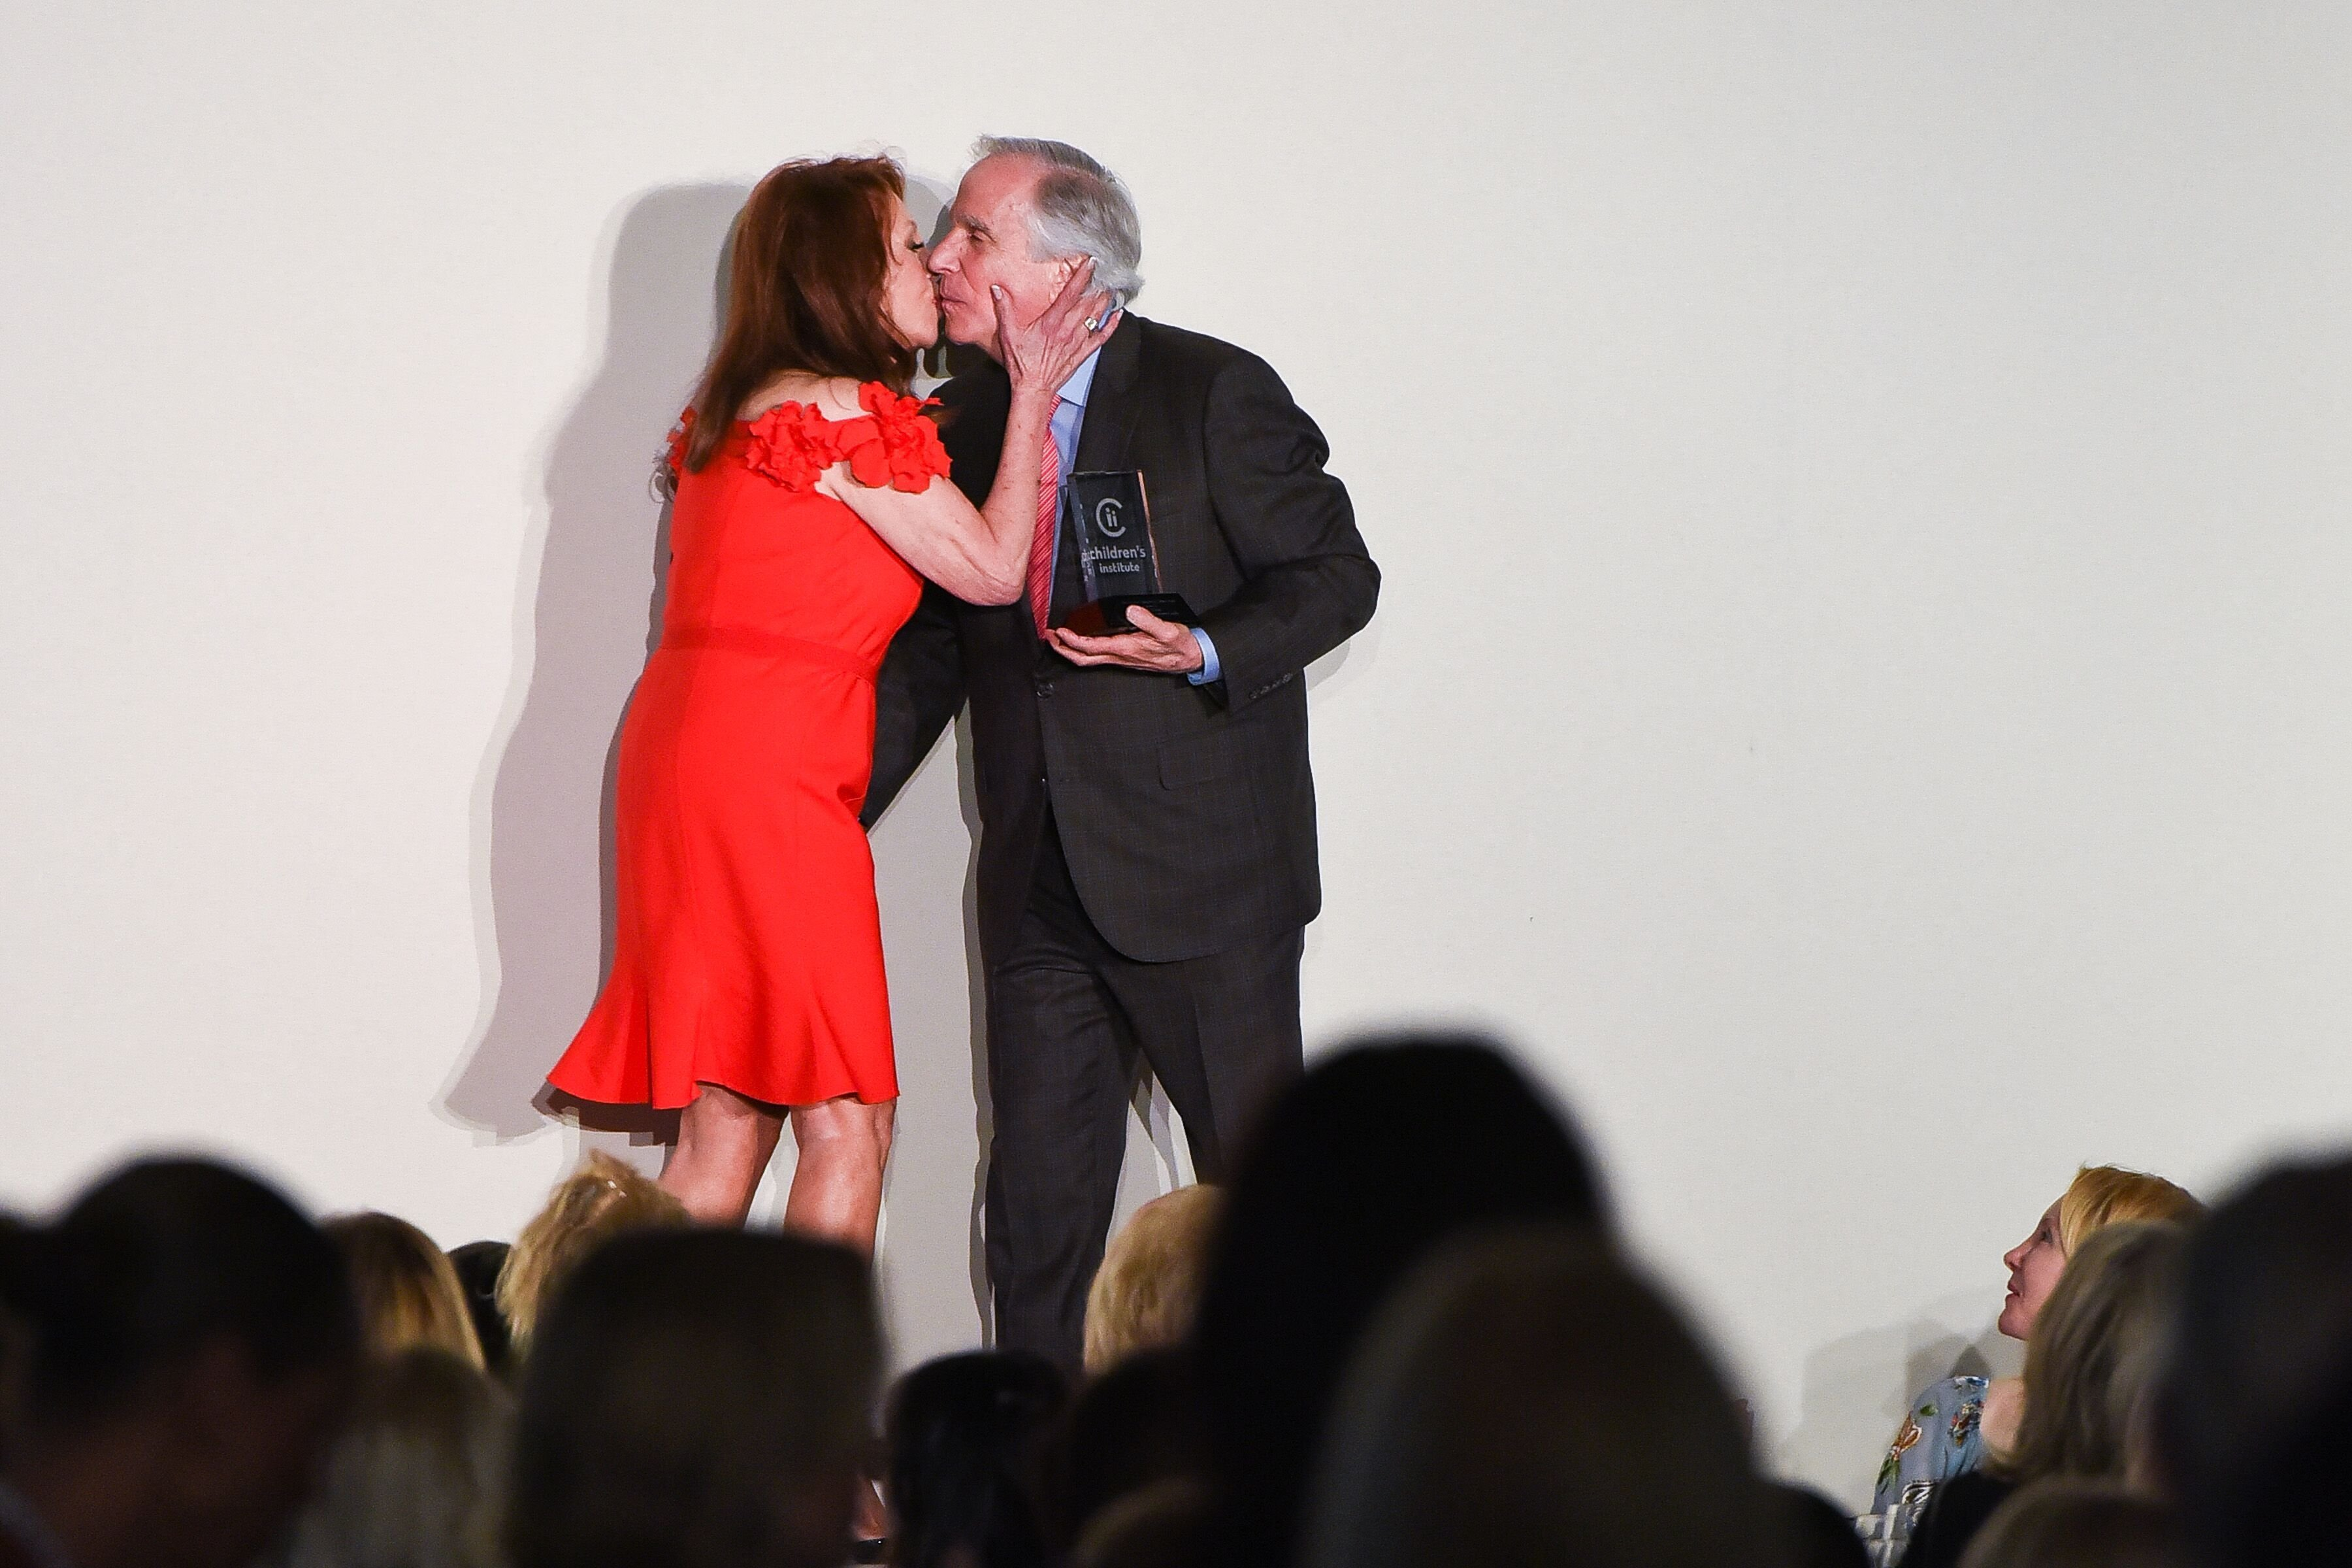 Marlo Thomas and Henry Winkler attend 31st Annual Colleagues Luncheon. | Source: Getty Images